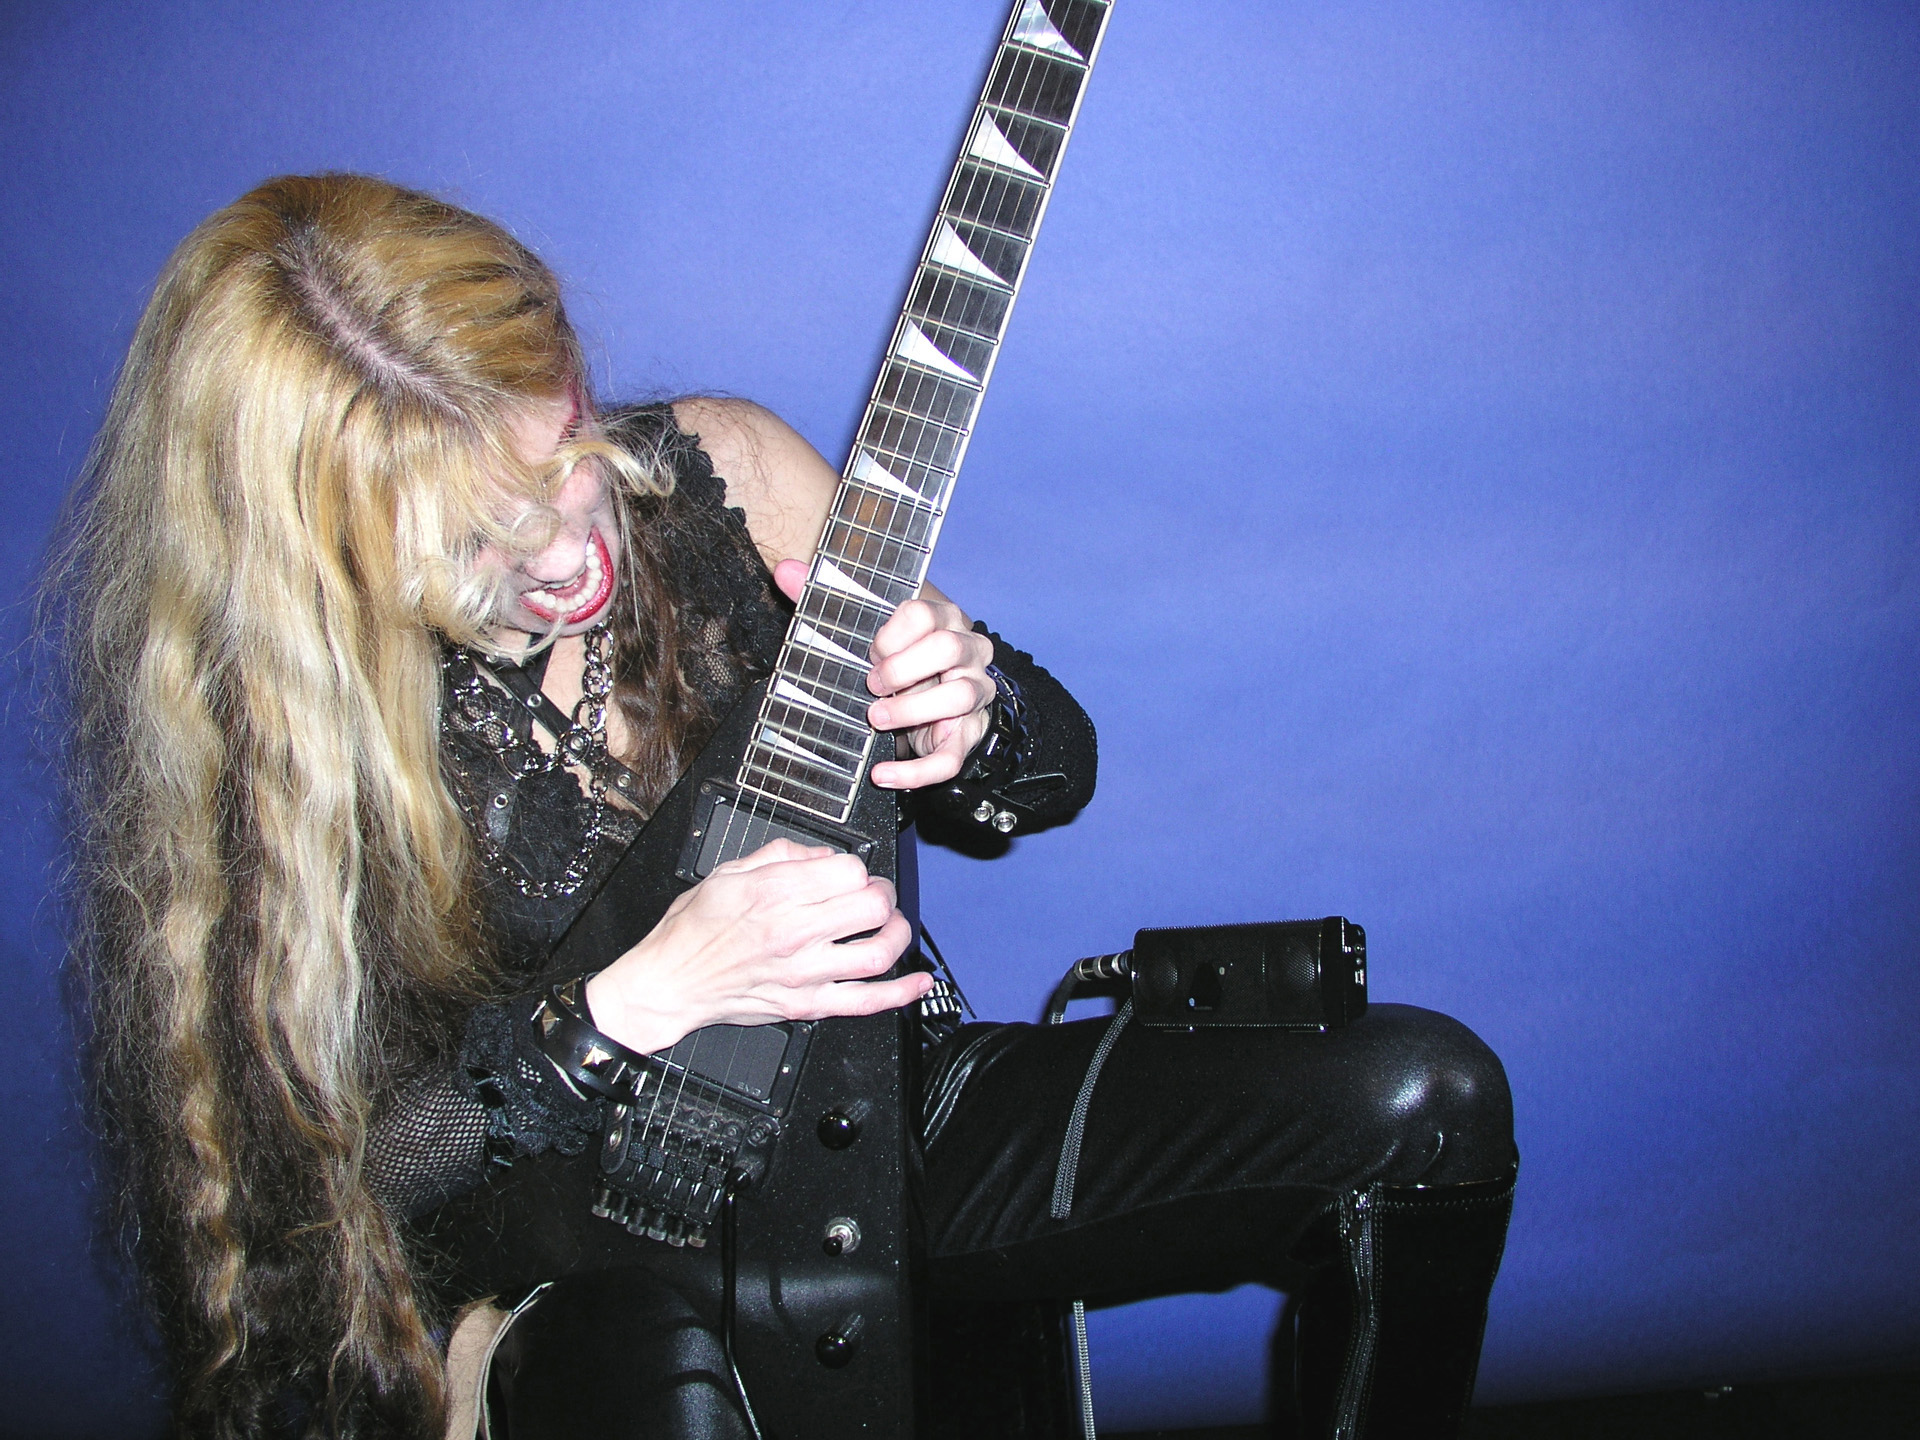 The Great Kat Shredding Flying V Guitar with foxL